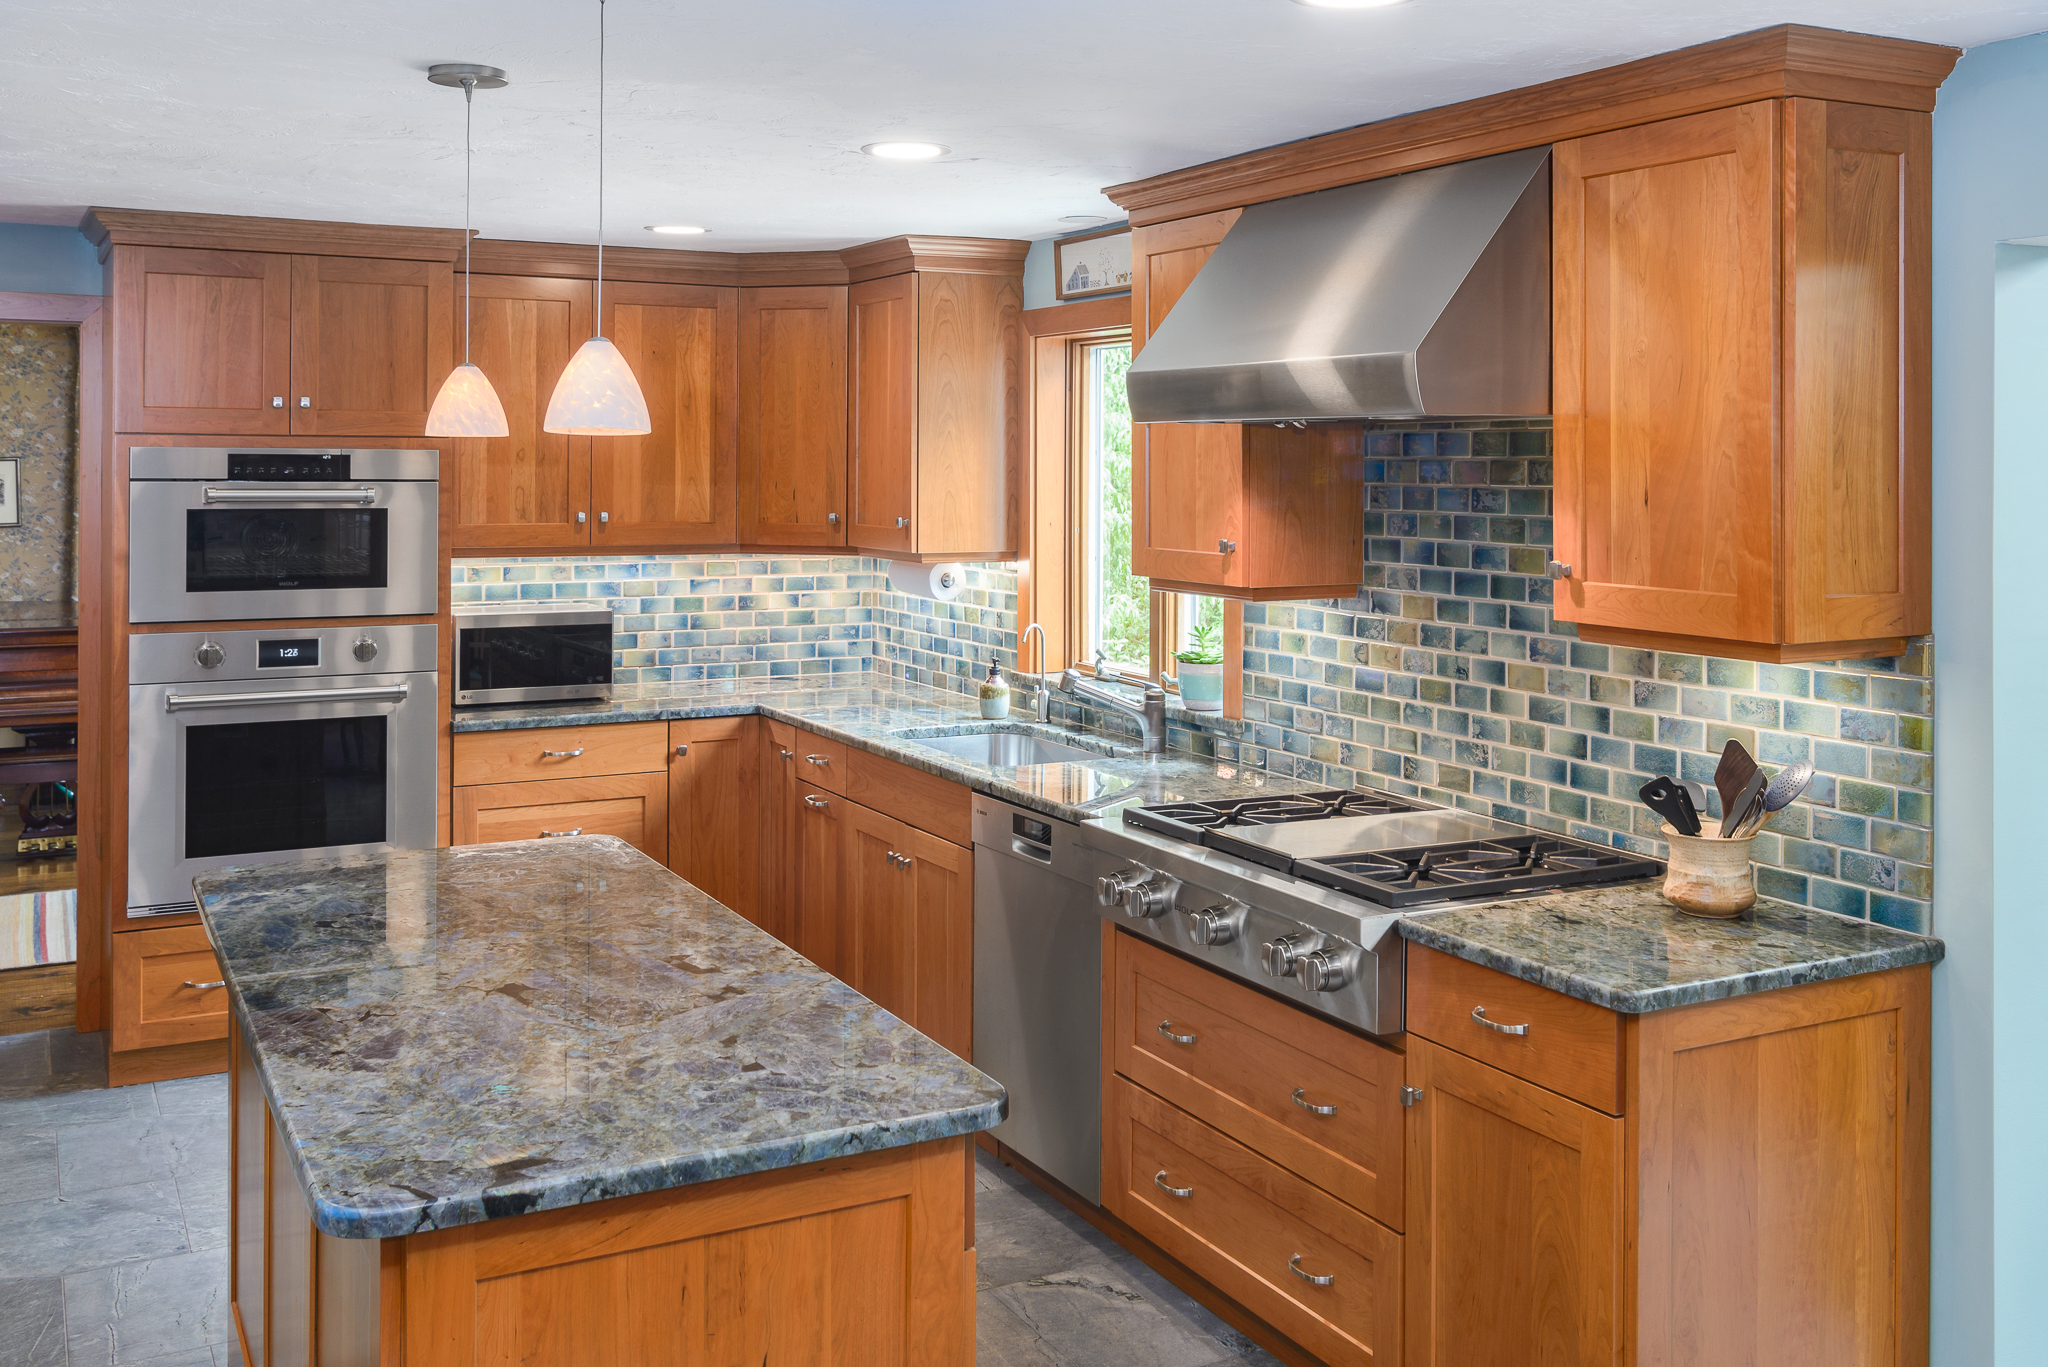 remodel a kitchen floor tiles photos associates massachusetts remodeling bolton ma